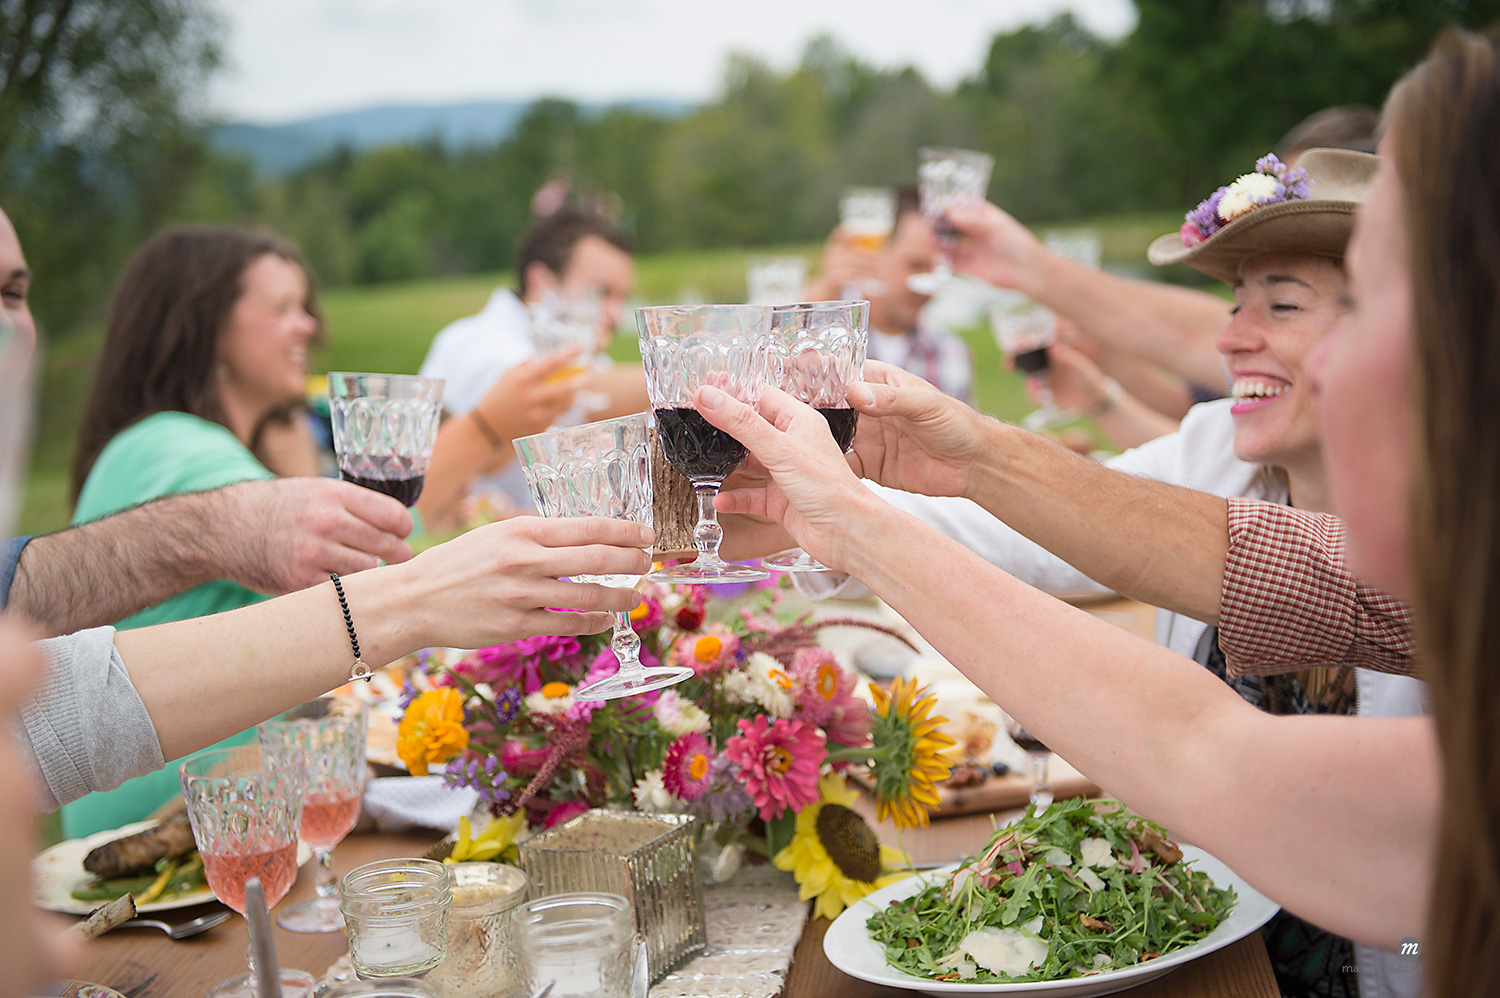 Family and friends making a toast at outdoor meal © Masterfile